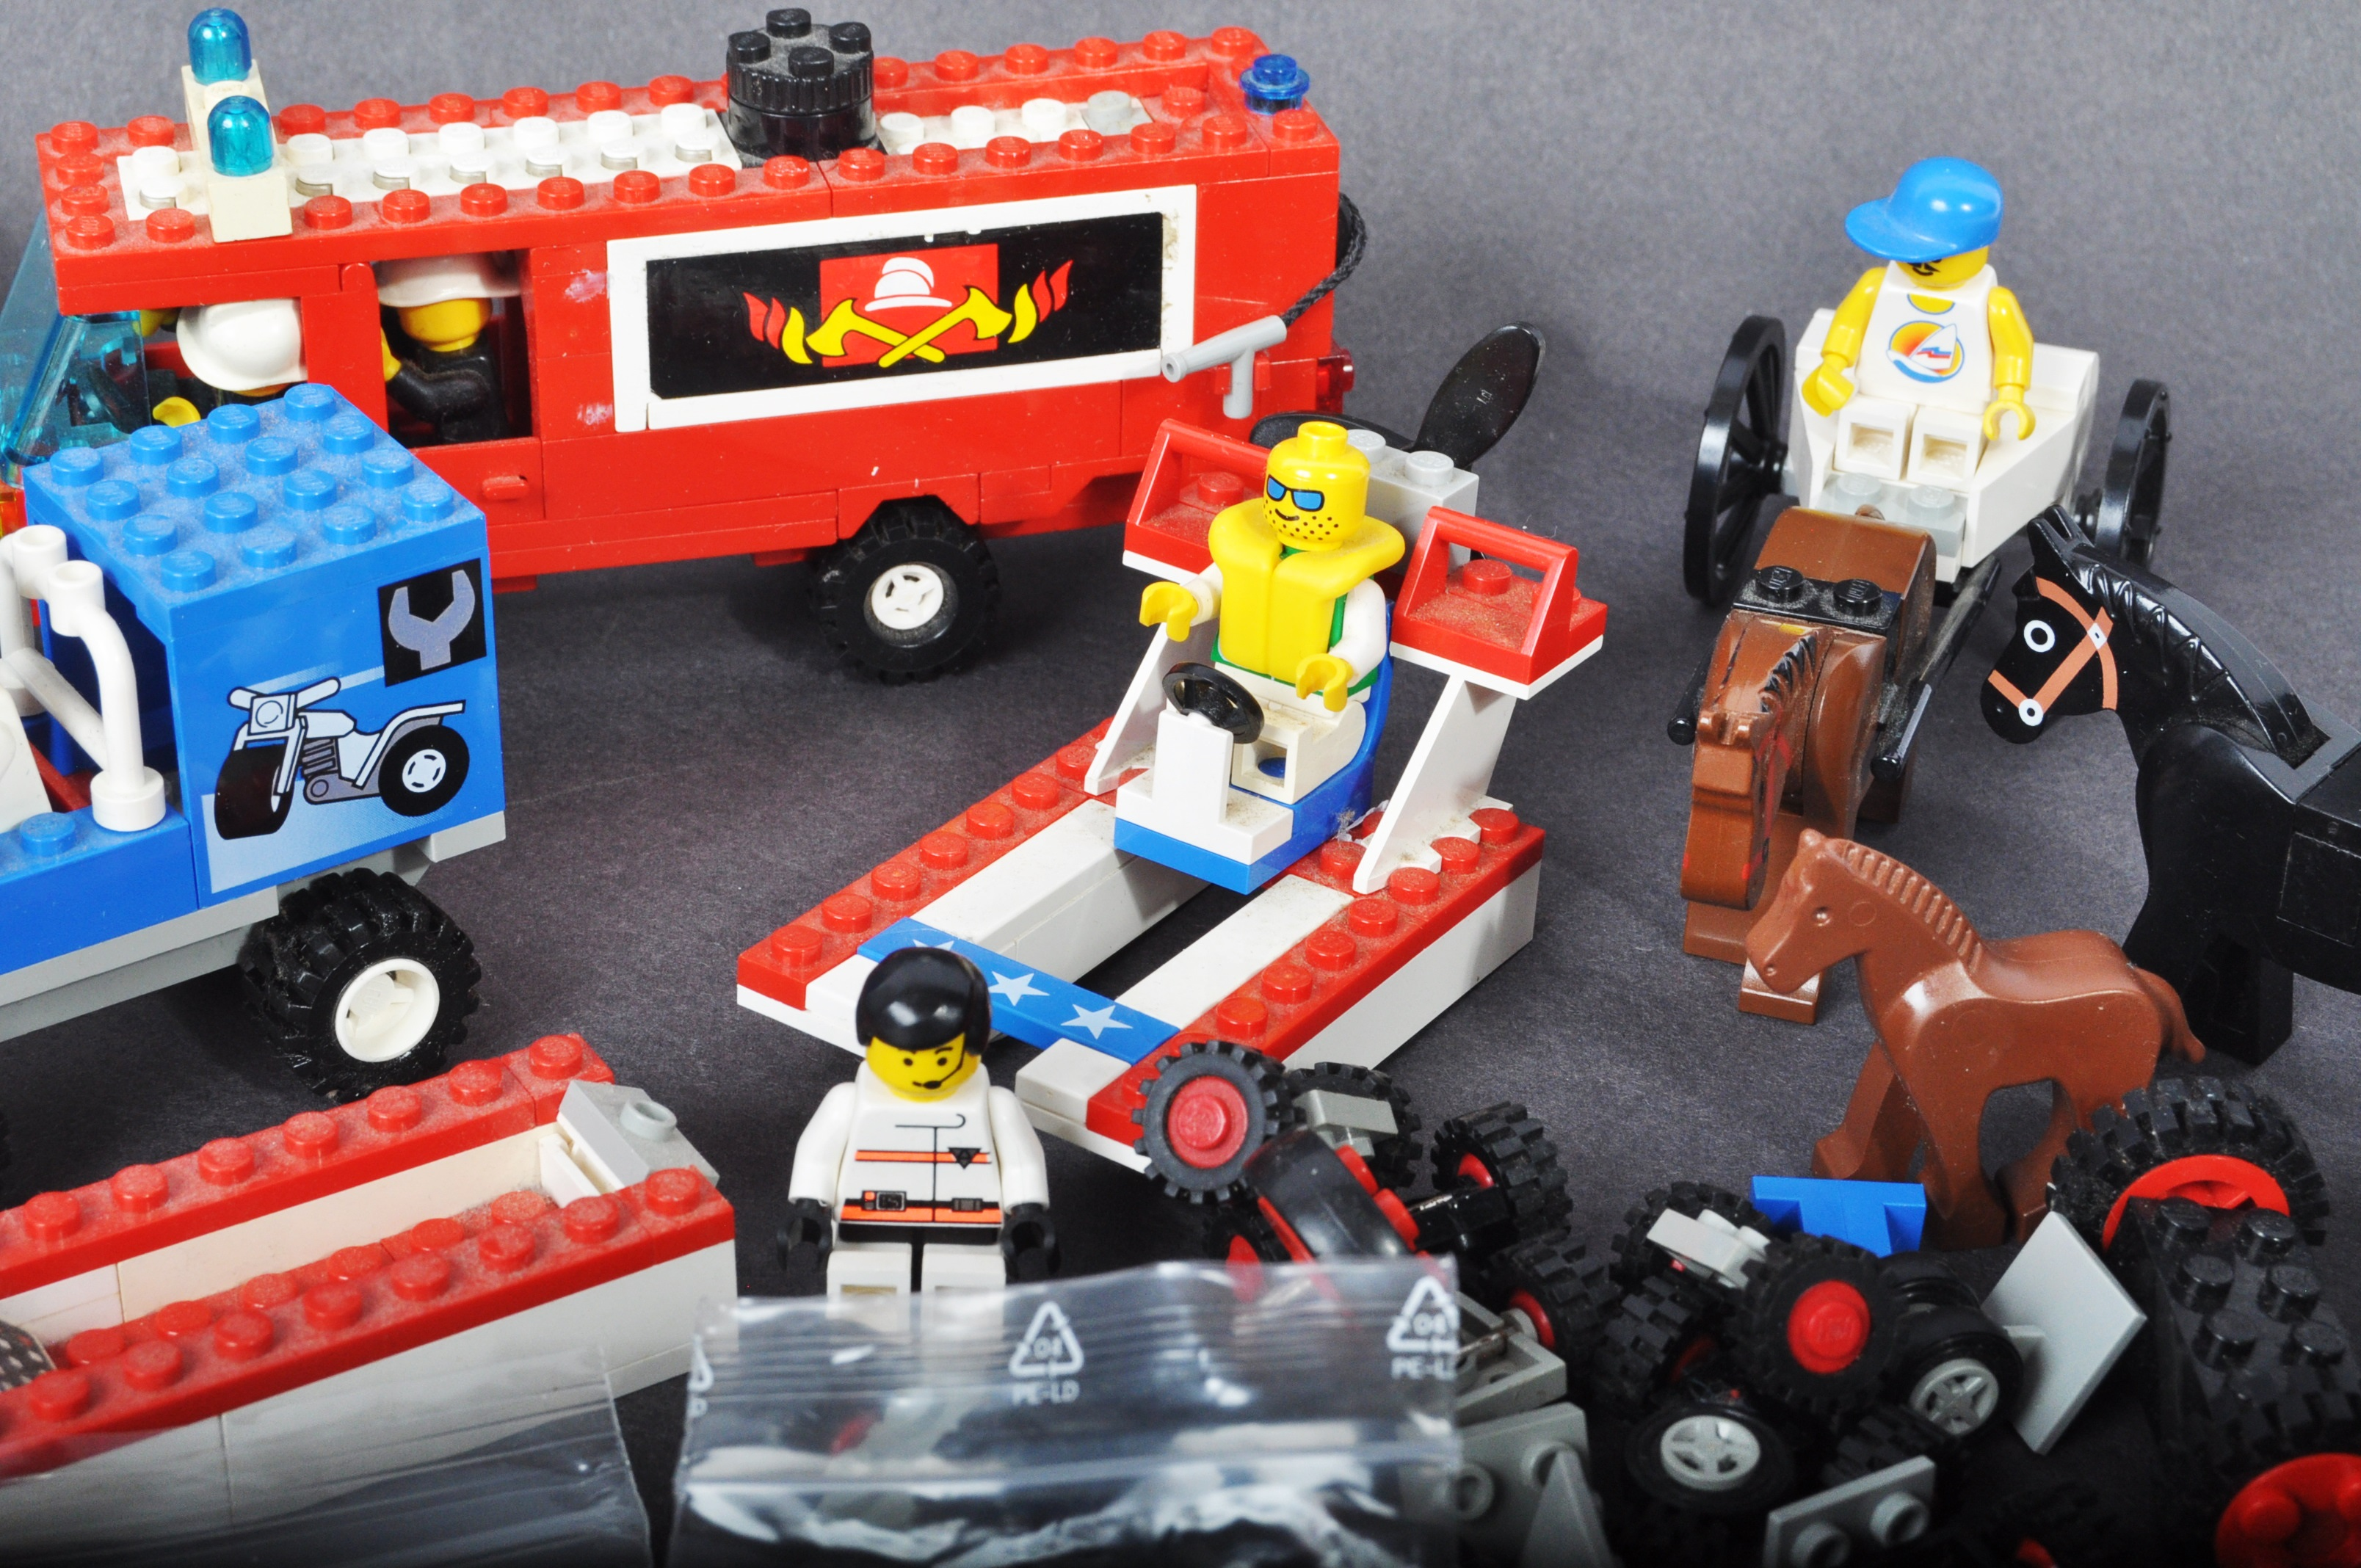 COLLECTION OF ASSORTED VINTAGE MINI LEGO SETS & MINIFIGURES - Image 6 of 10